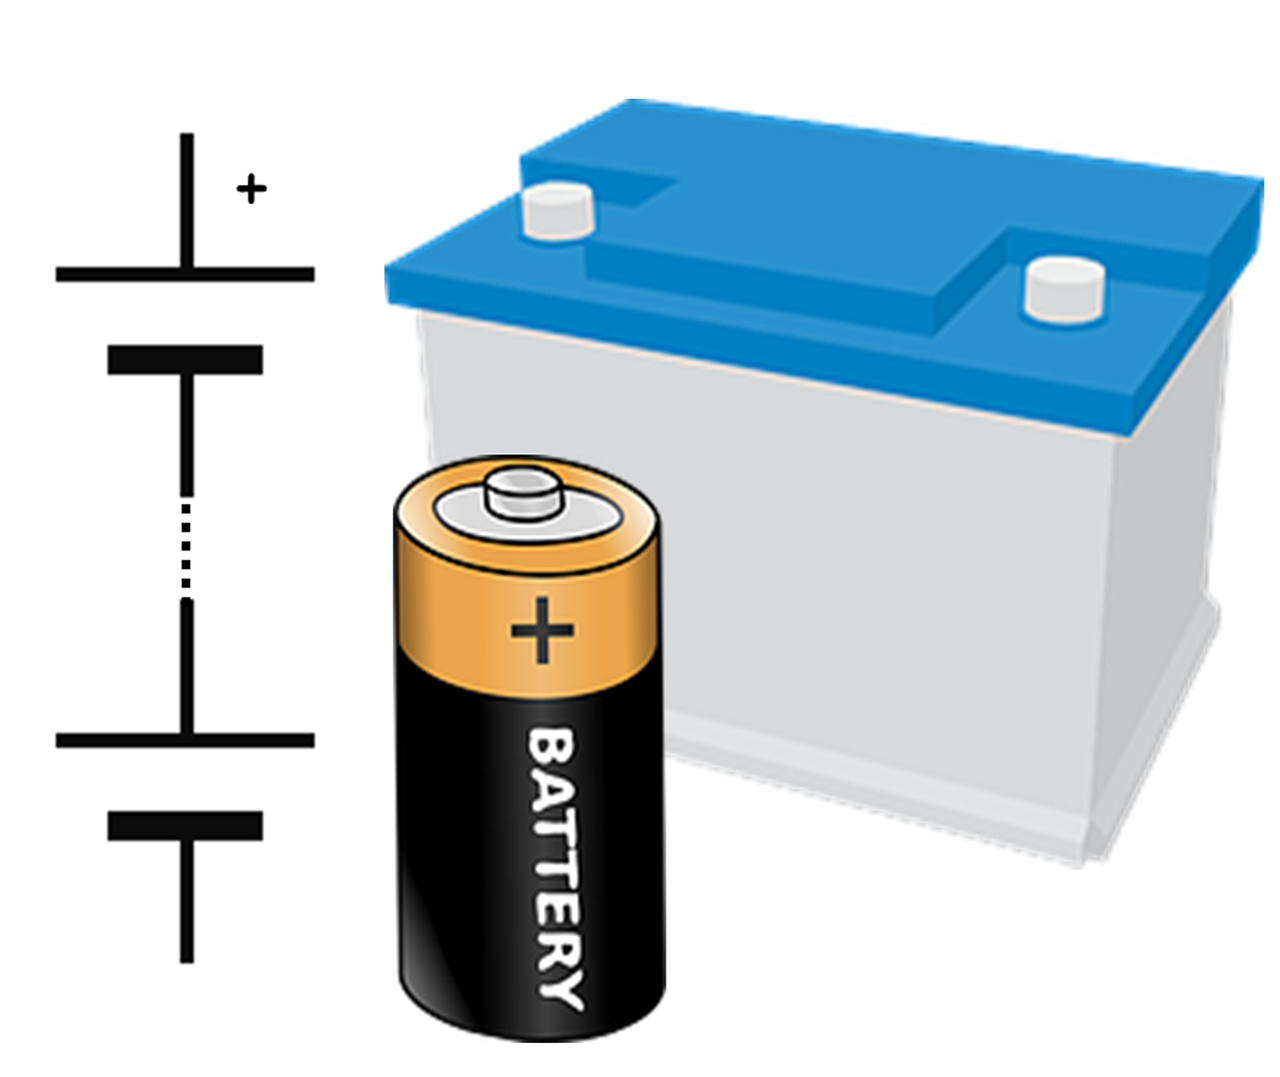 Size of the battery